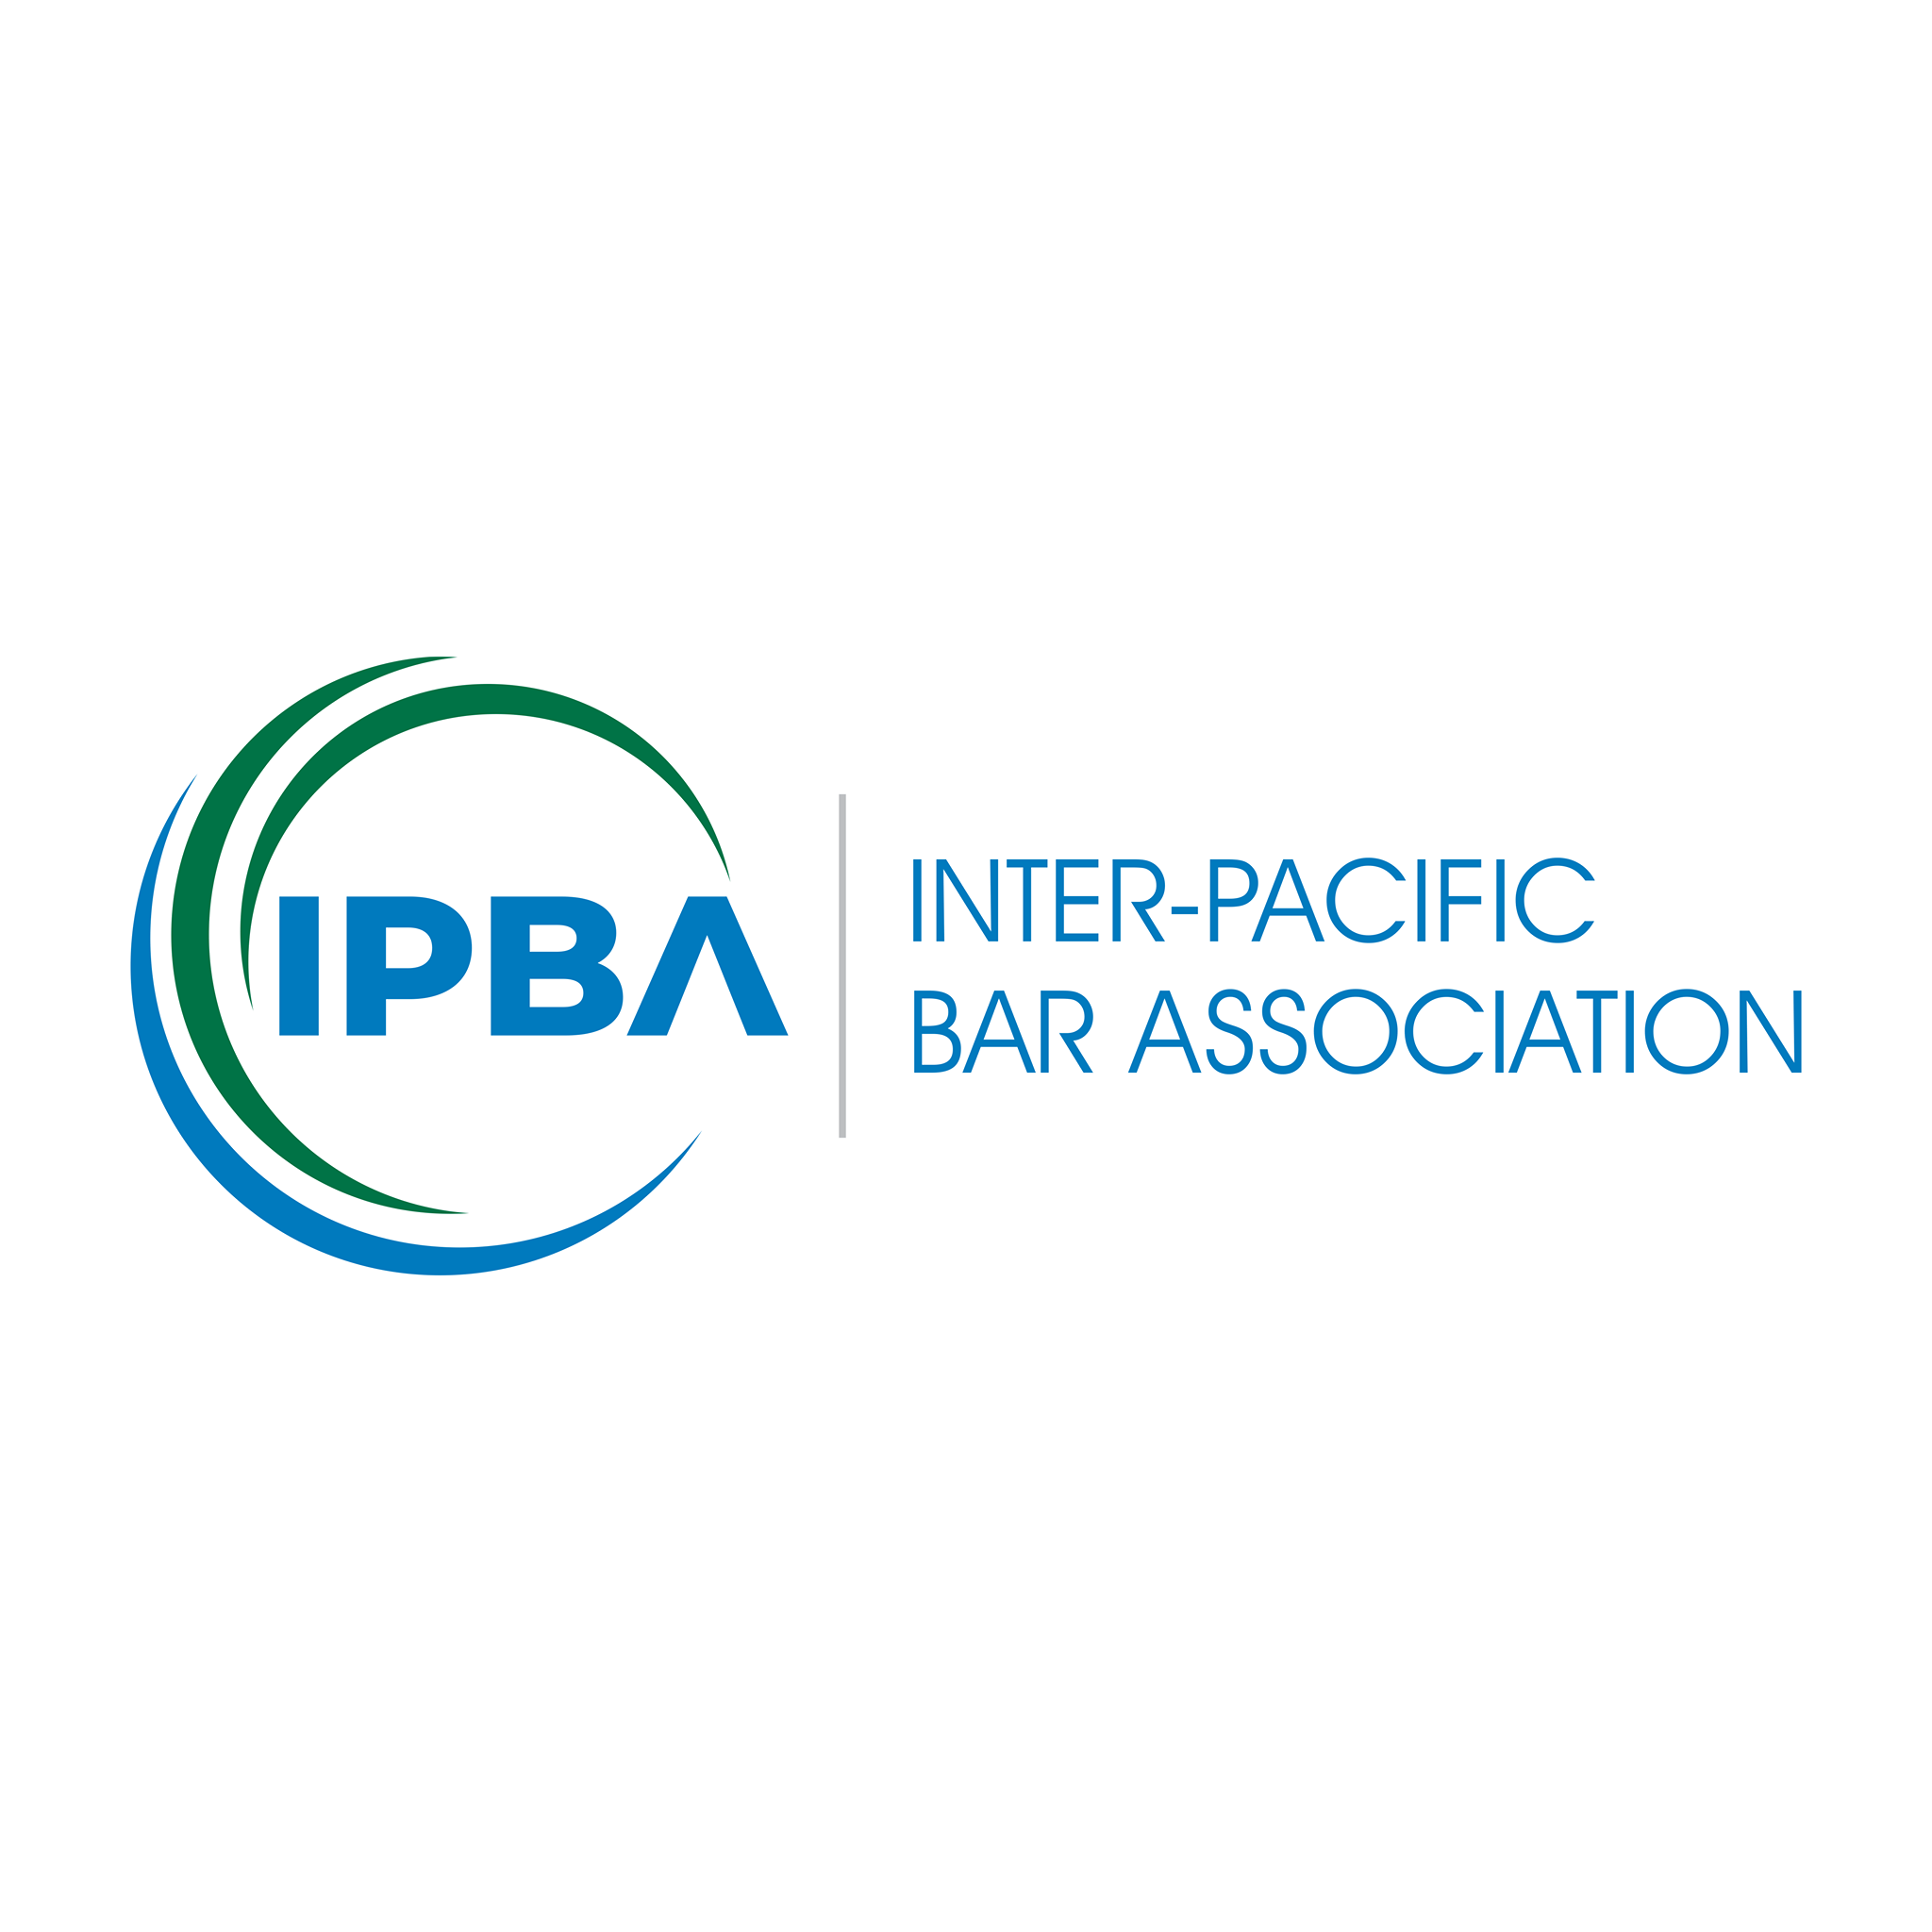 Inter-Pacific Bar Association Scholarship programs